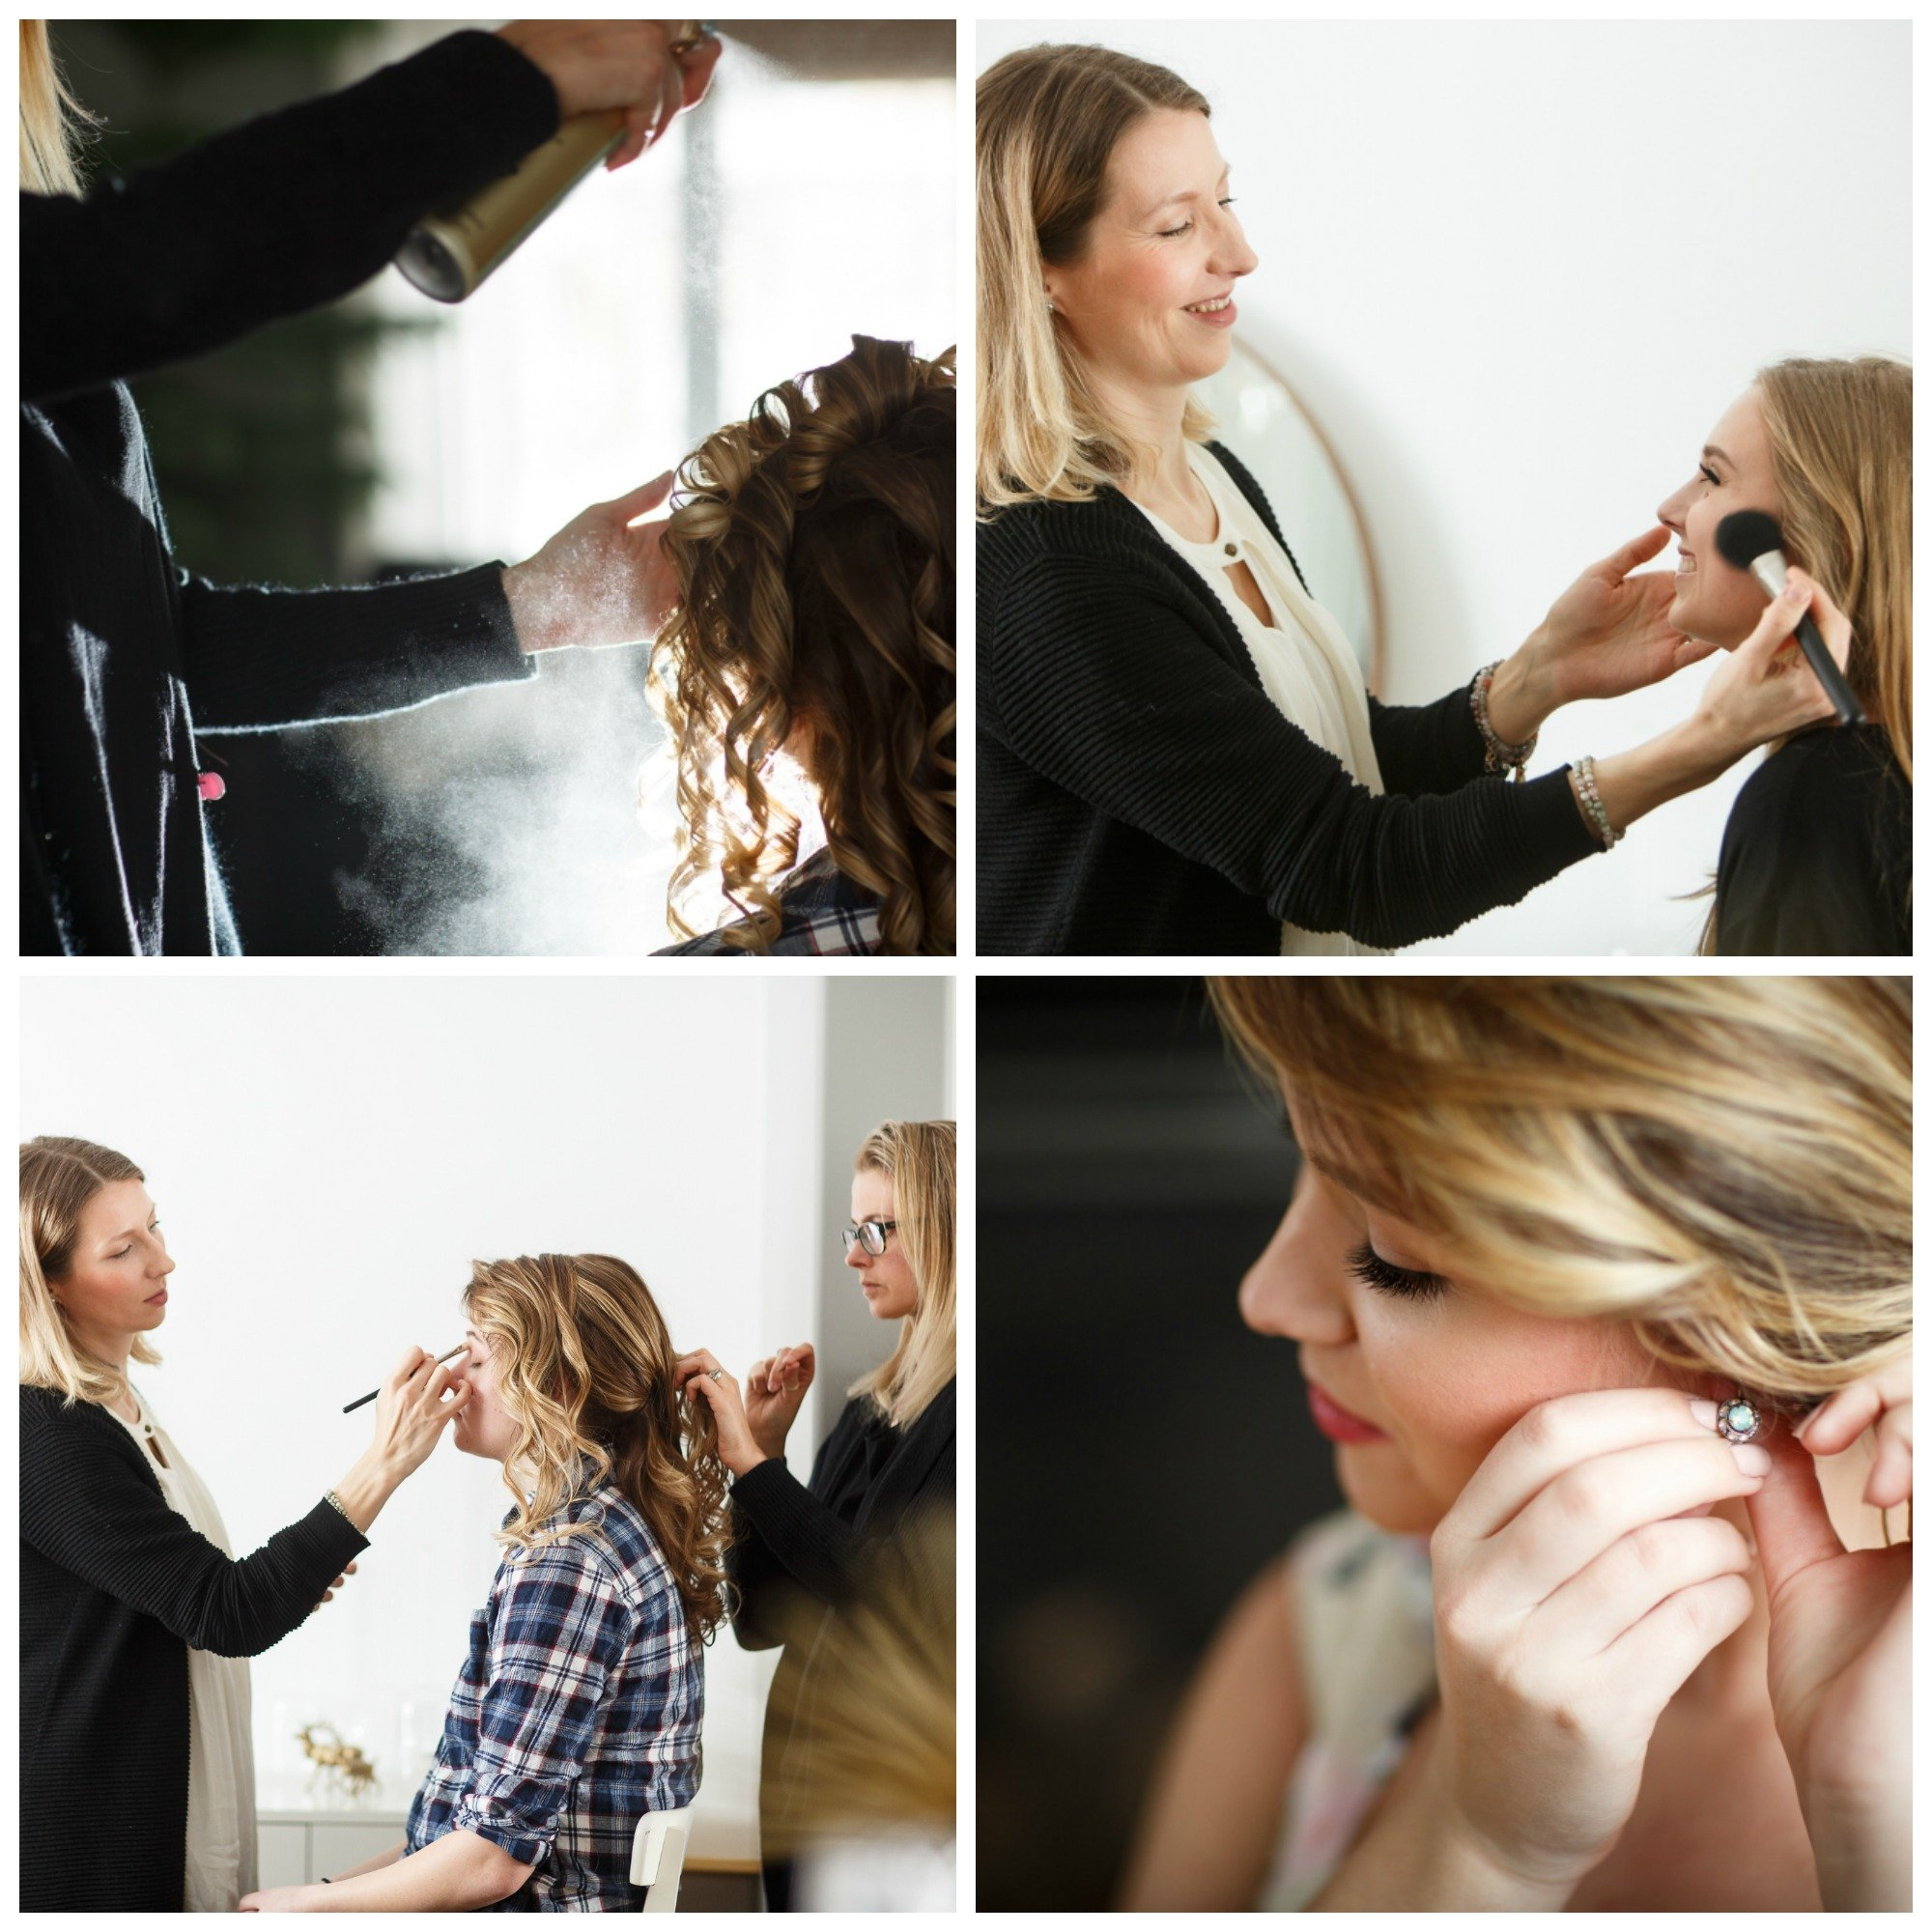 Prom makeup and hair by Ottawa best makeup artist Klava Z and talented hairstylist Topknot Hairstyling